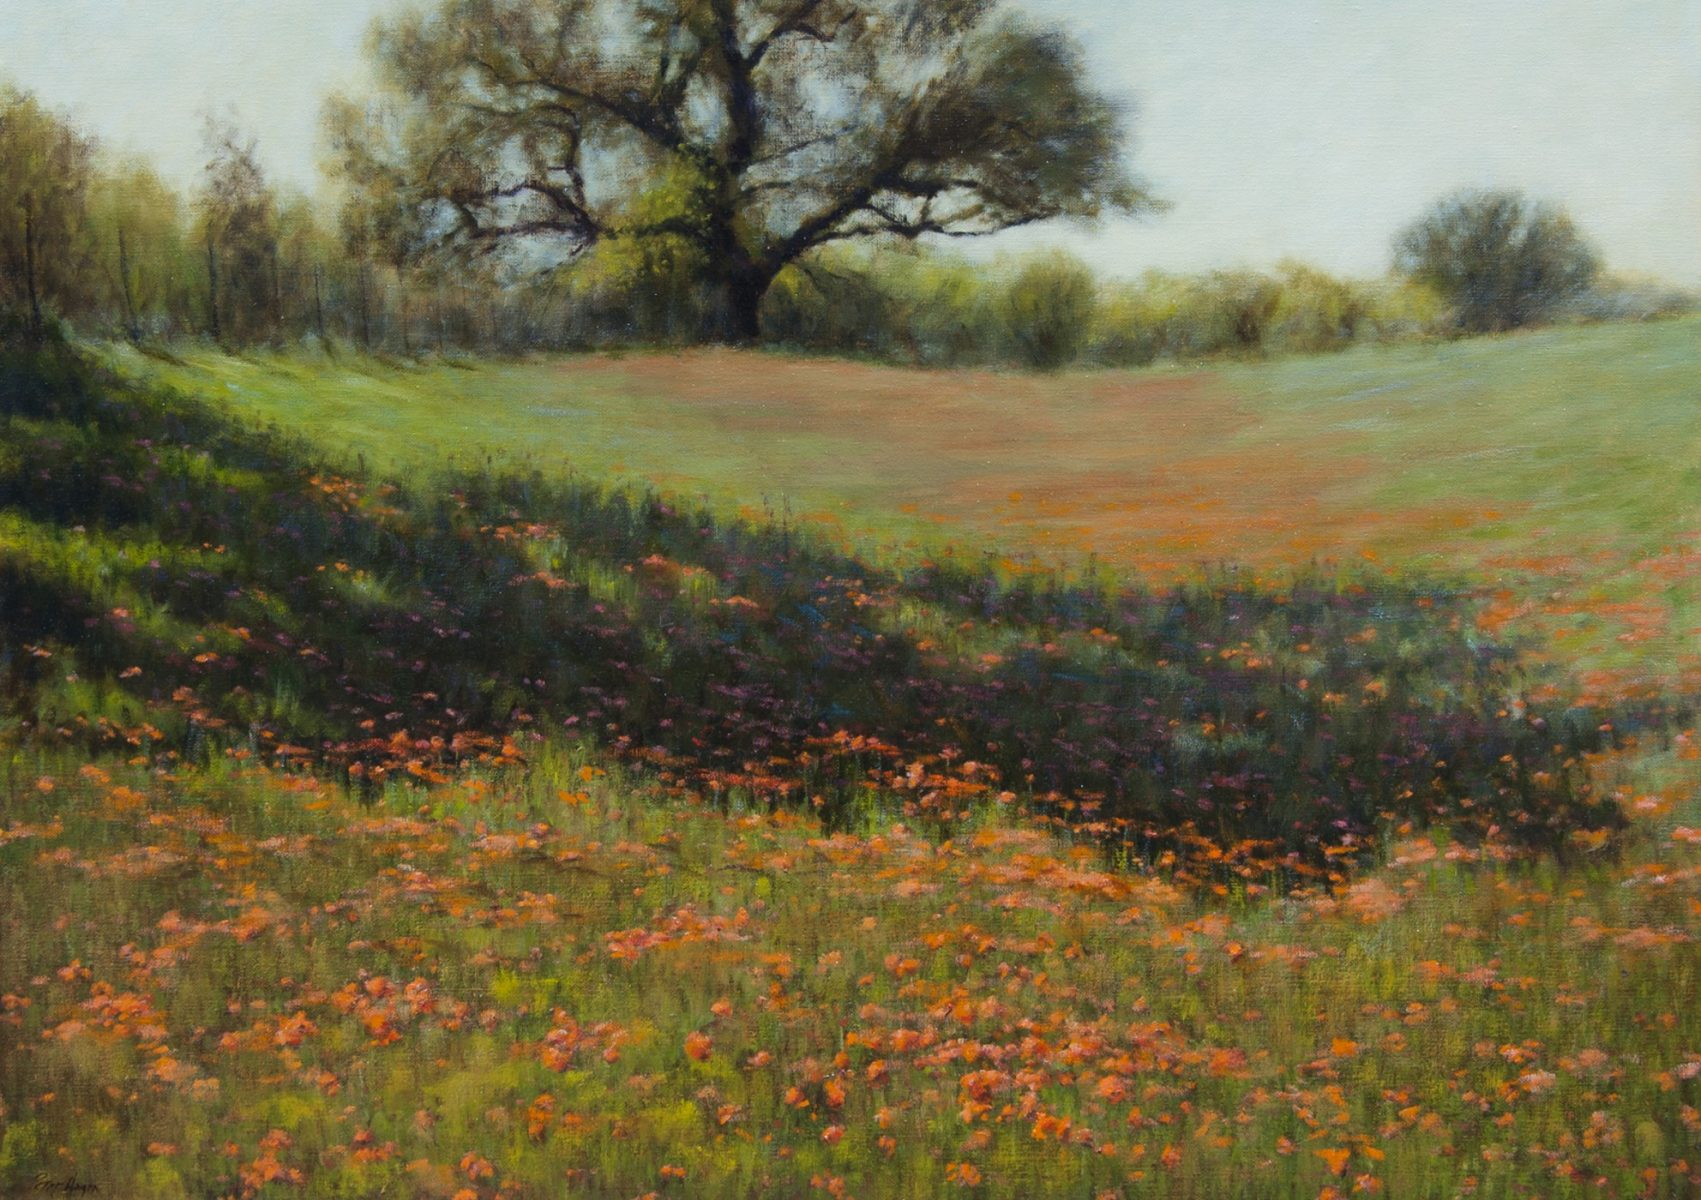 Spring in the Hill Country painting by Peter Hagen